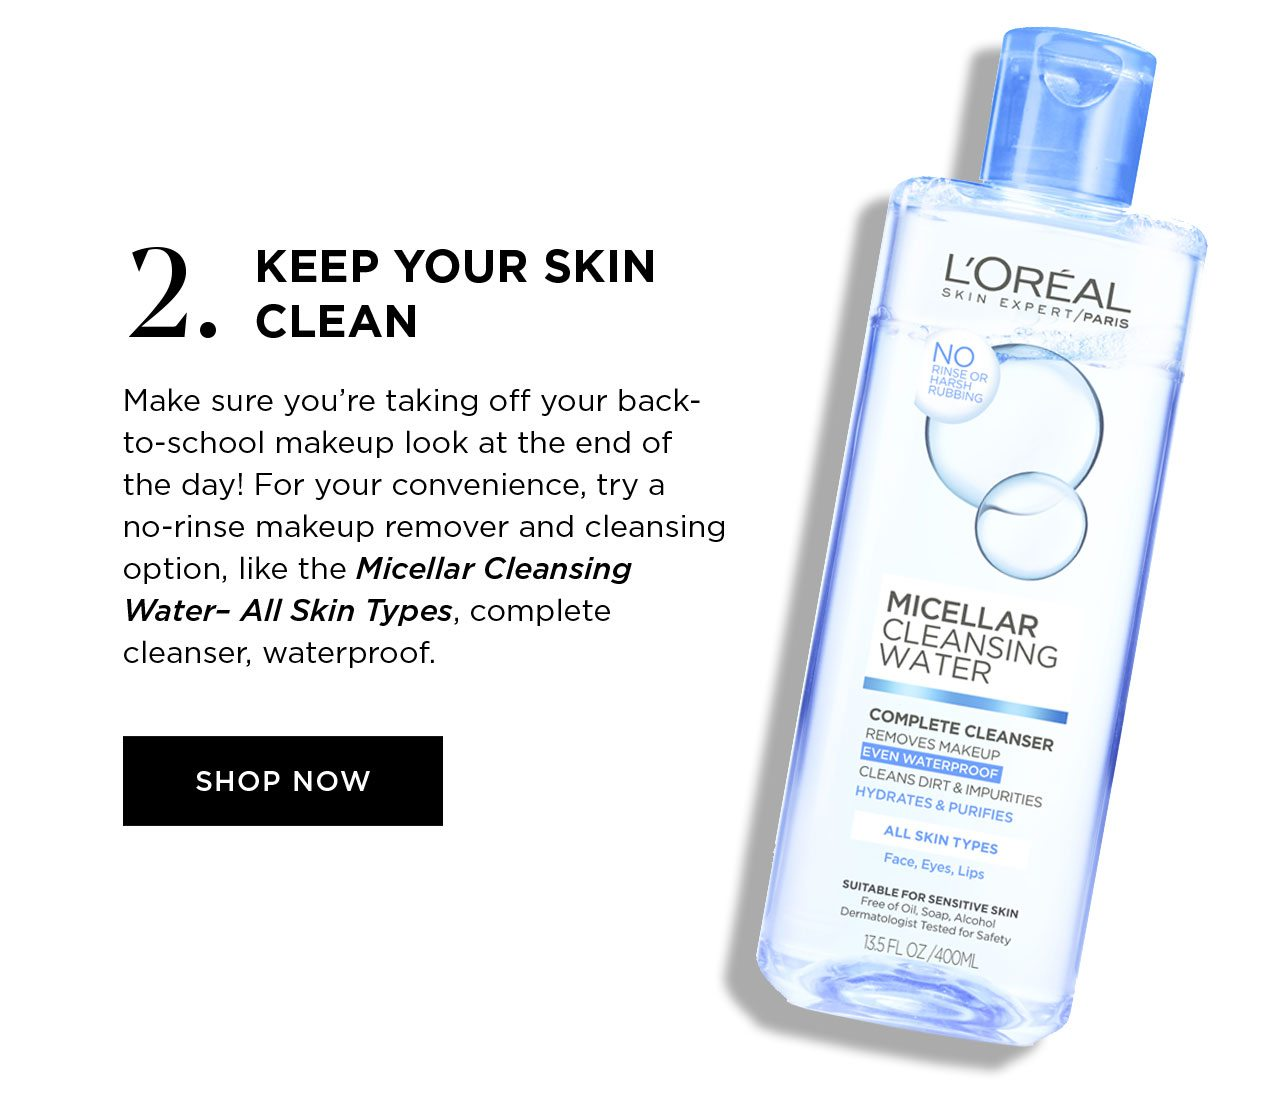 2. KEEP YOUR SKIN CLEAN - Make sure you're taking off your back-to-school makeup look at the end of the day! For your convenience, try a no-rinse makeup remover and cleansing option, like the Micellar Cleansing Water- All Skin Types, complete cleanser, waterproof. - SHOP NOW